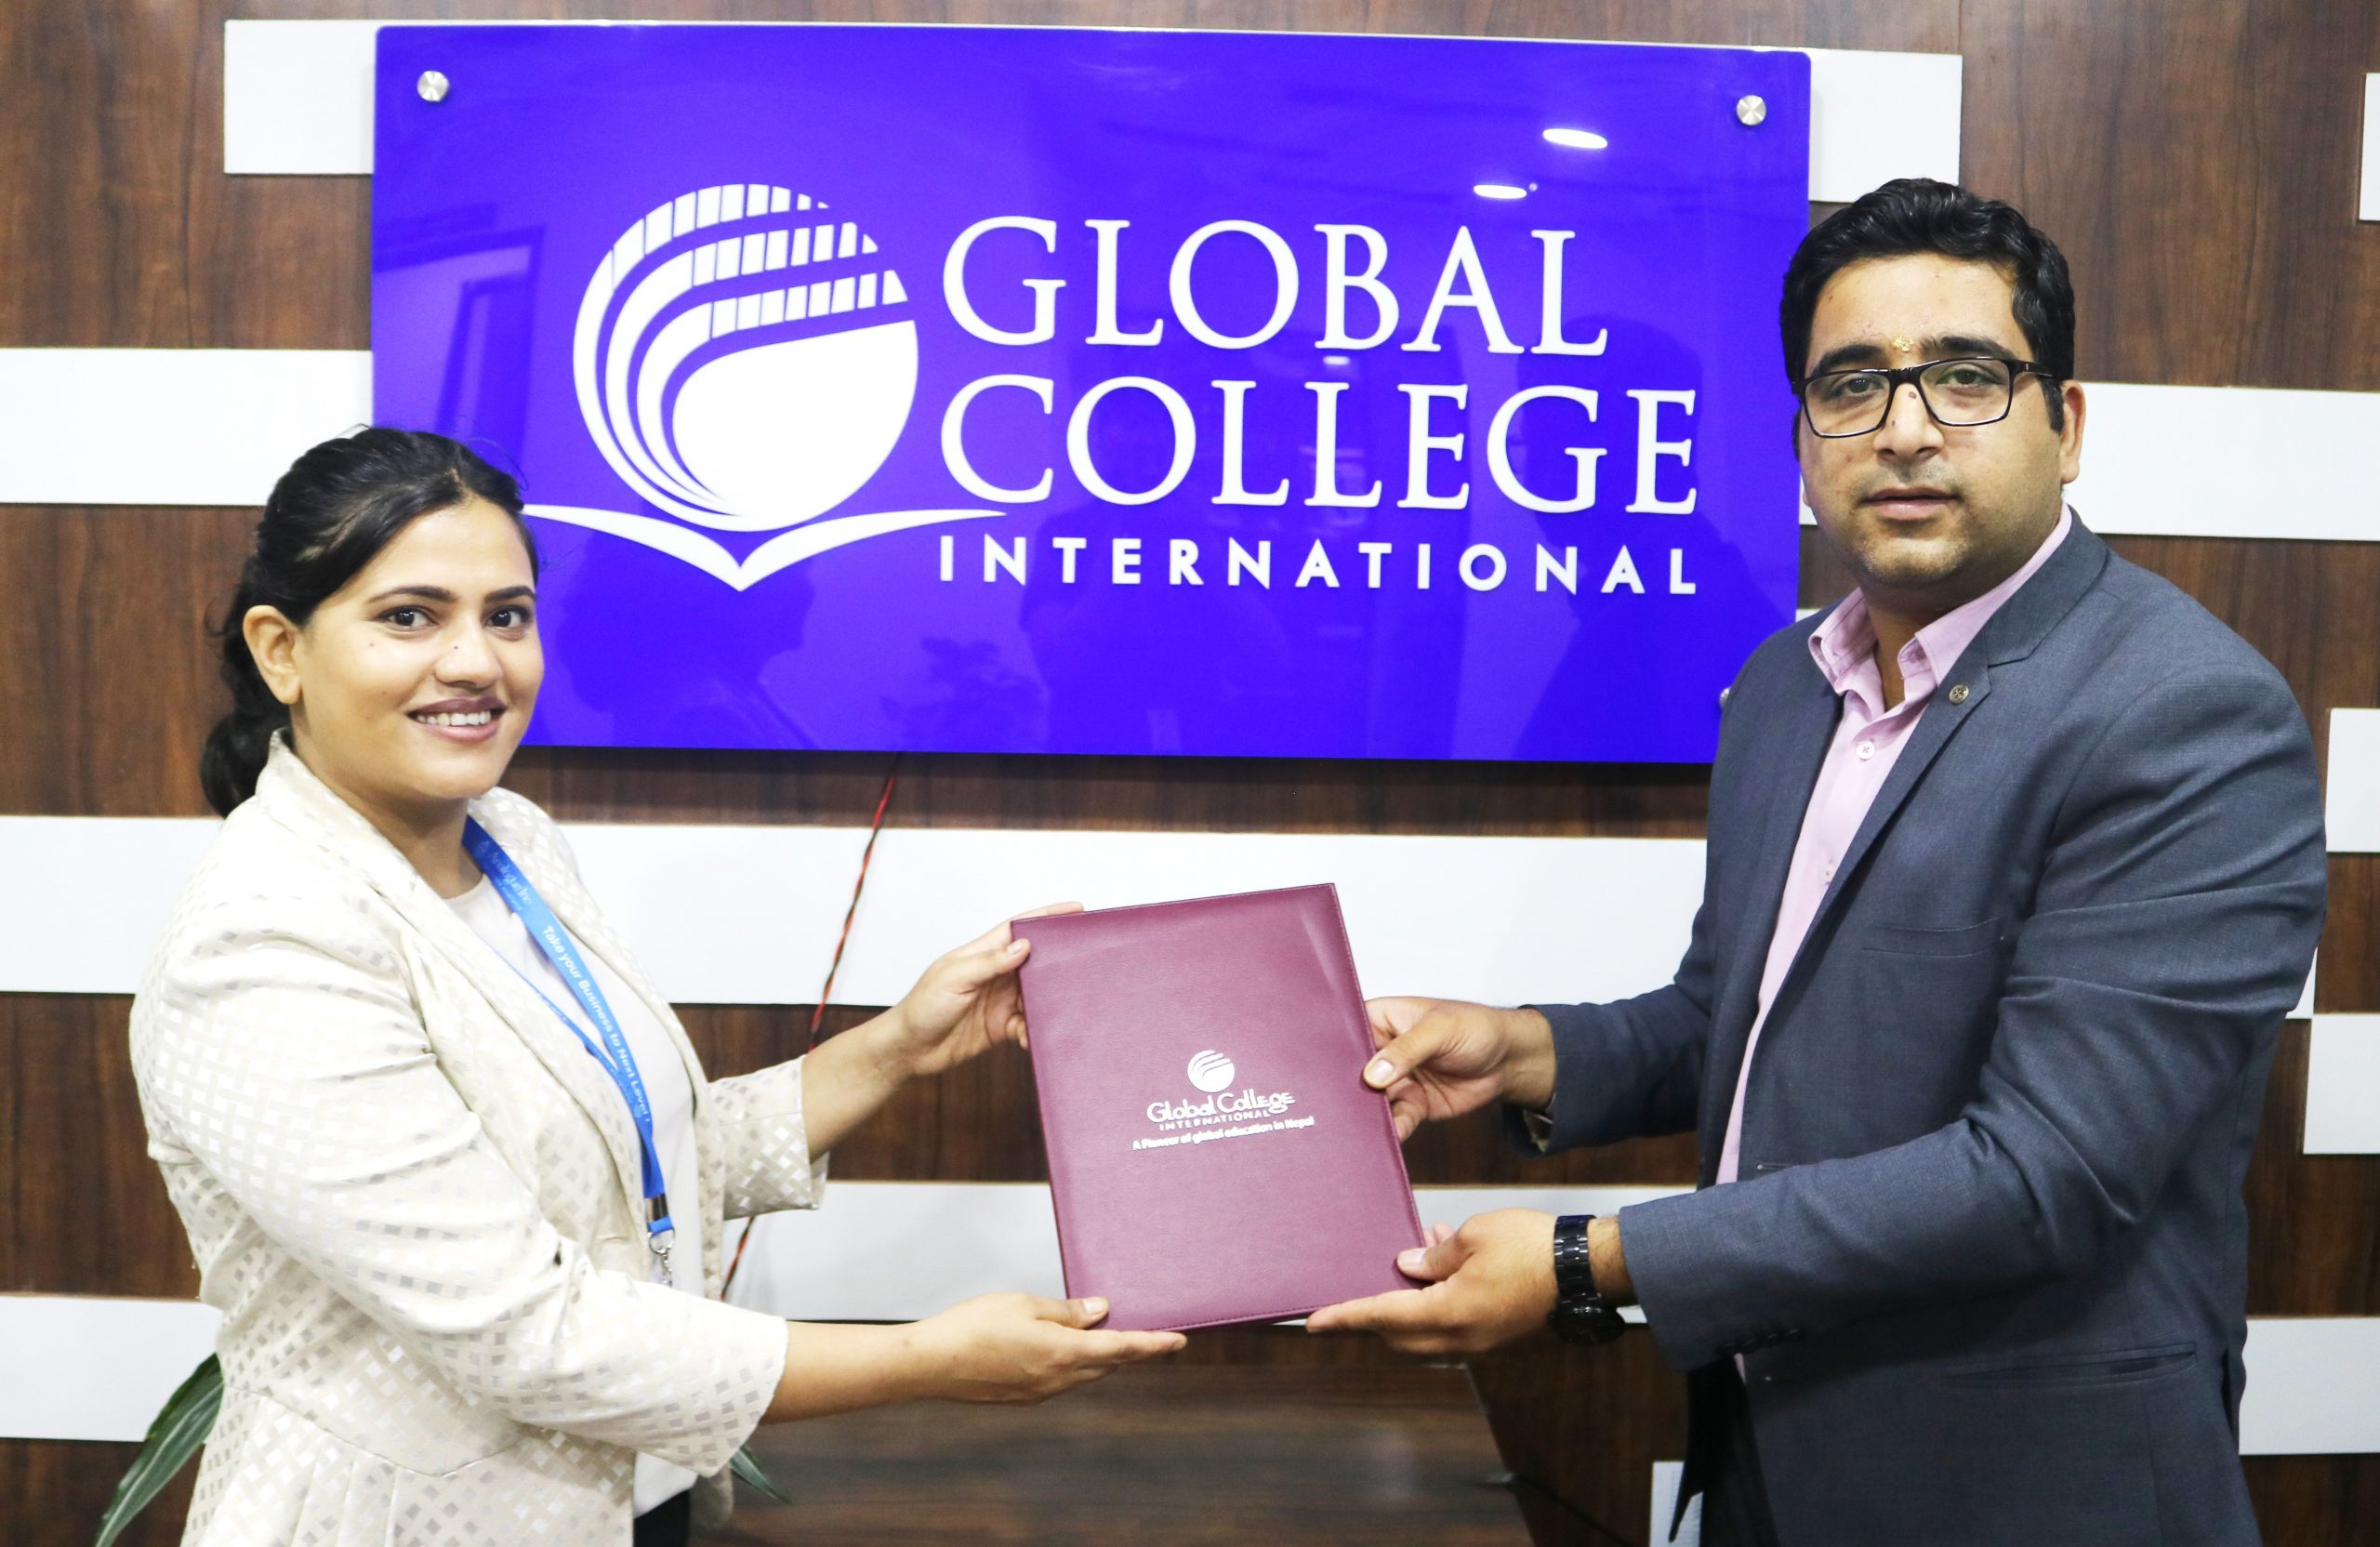 LeoSquad signs MOU with Global College International (GCI)